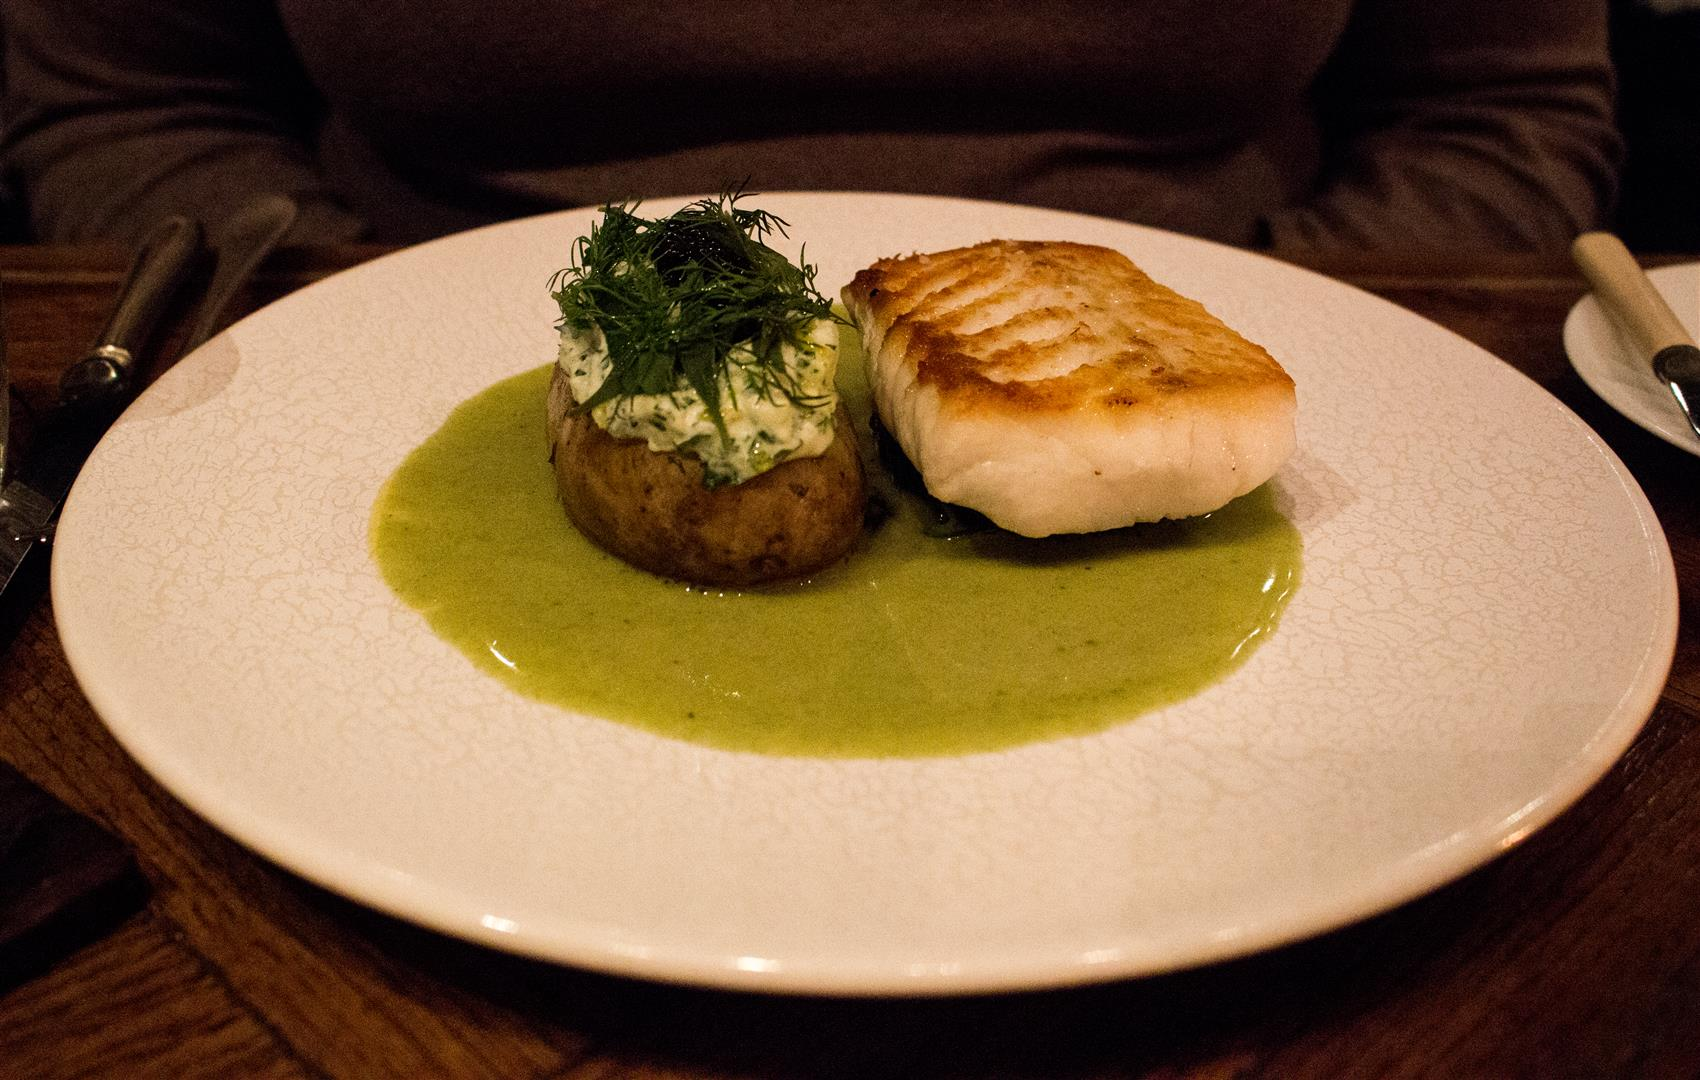 The comforting Hake with Baked Potato